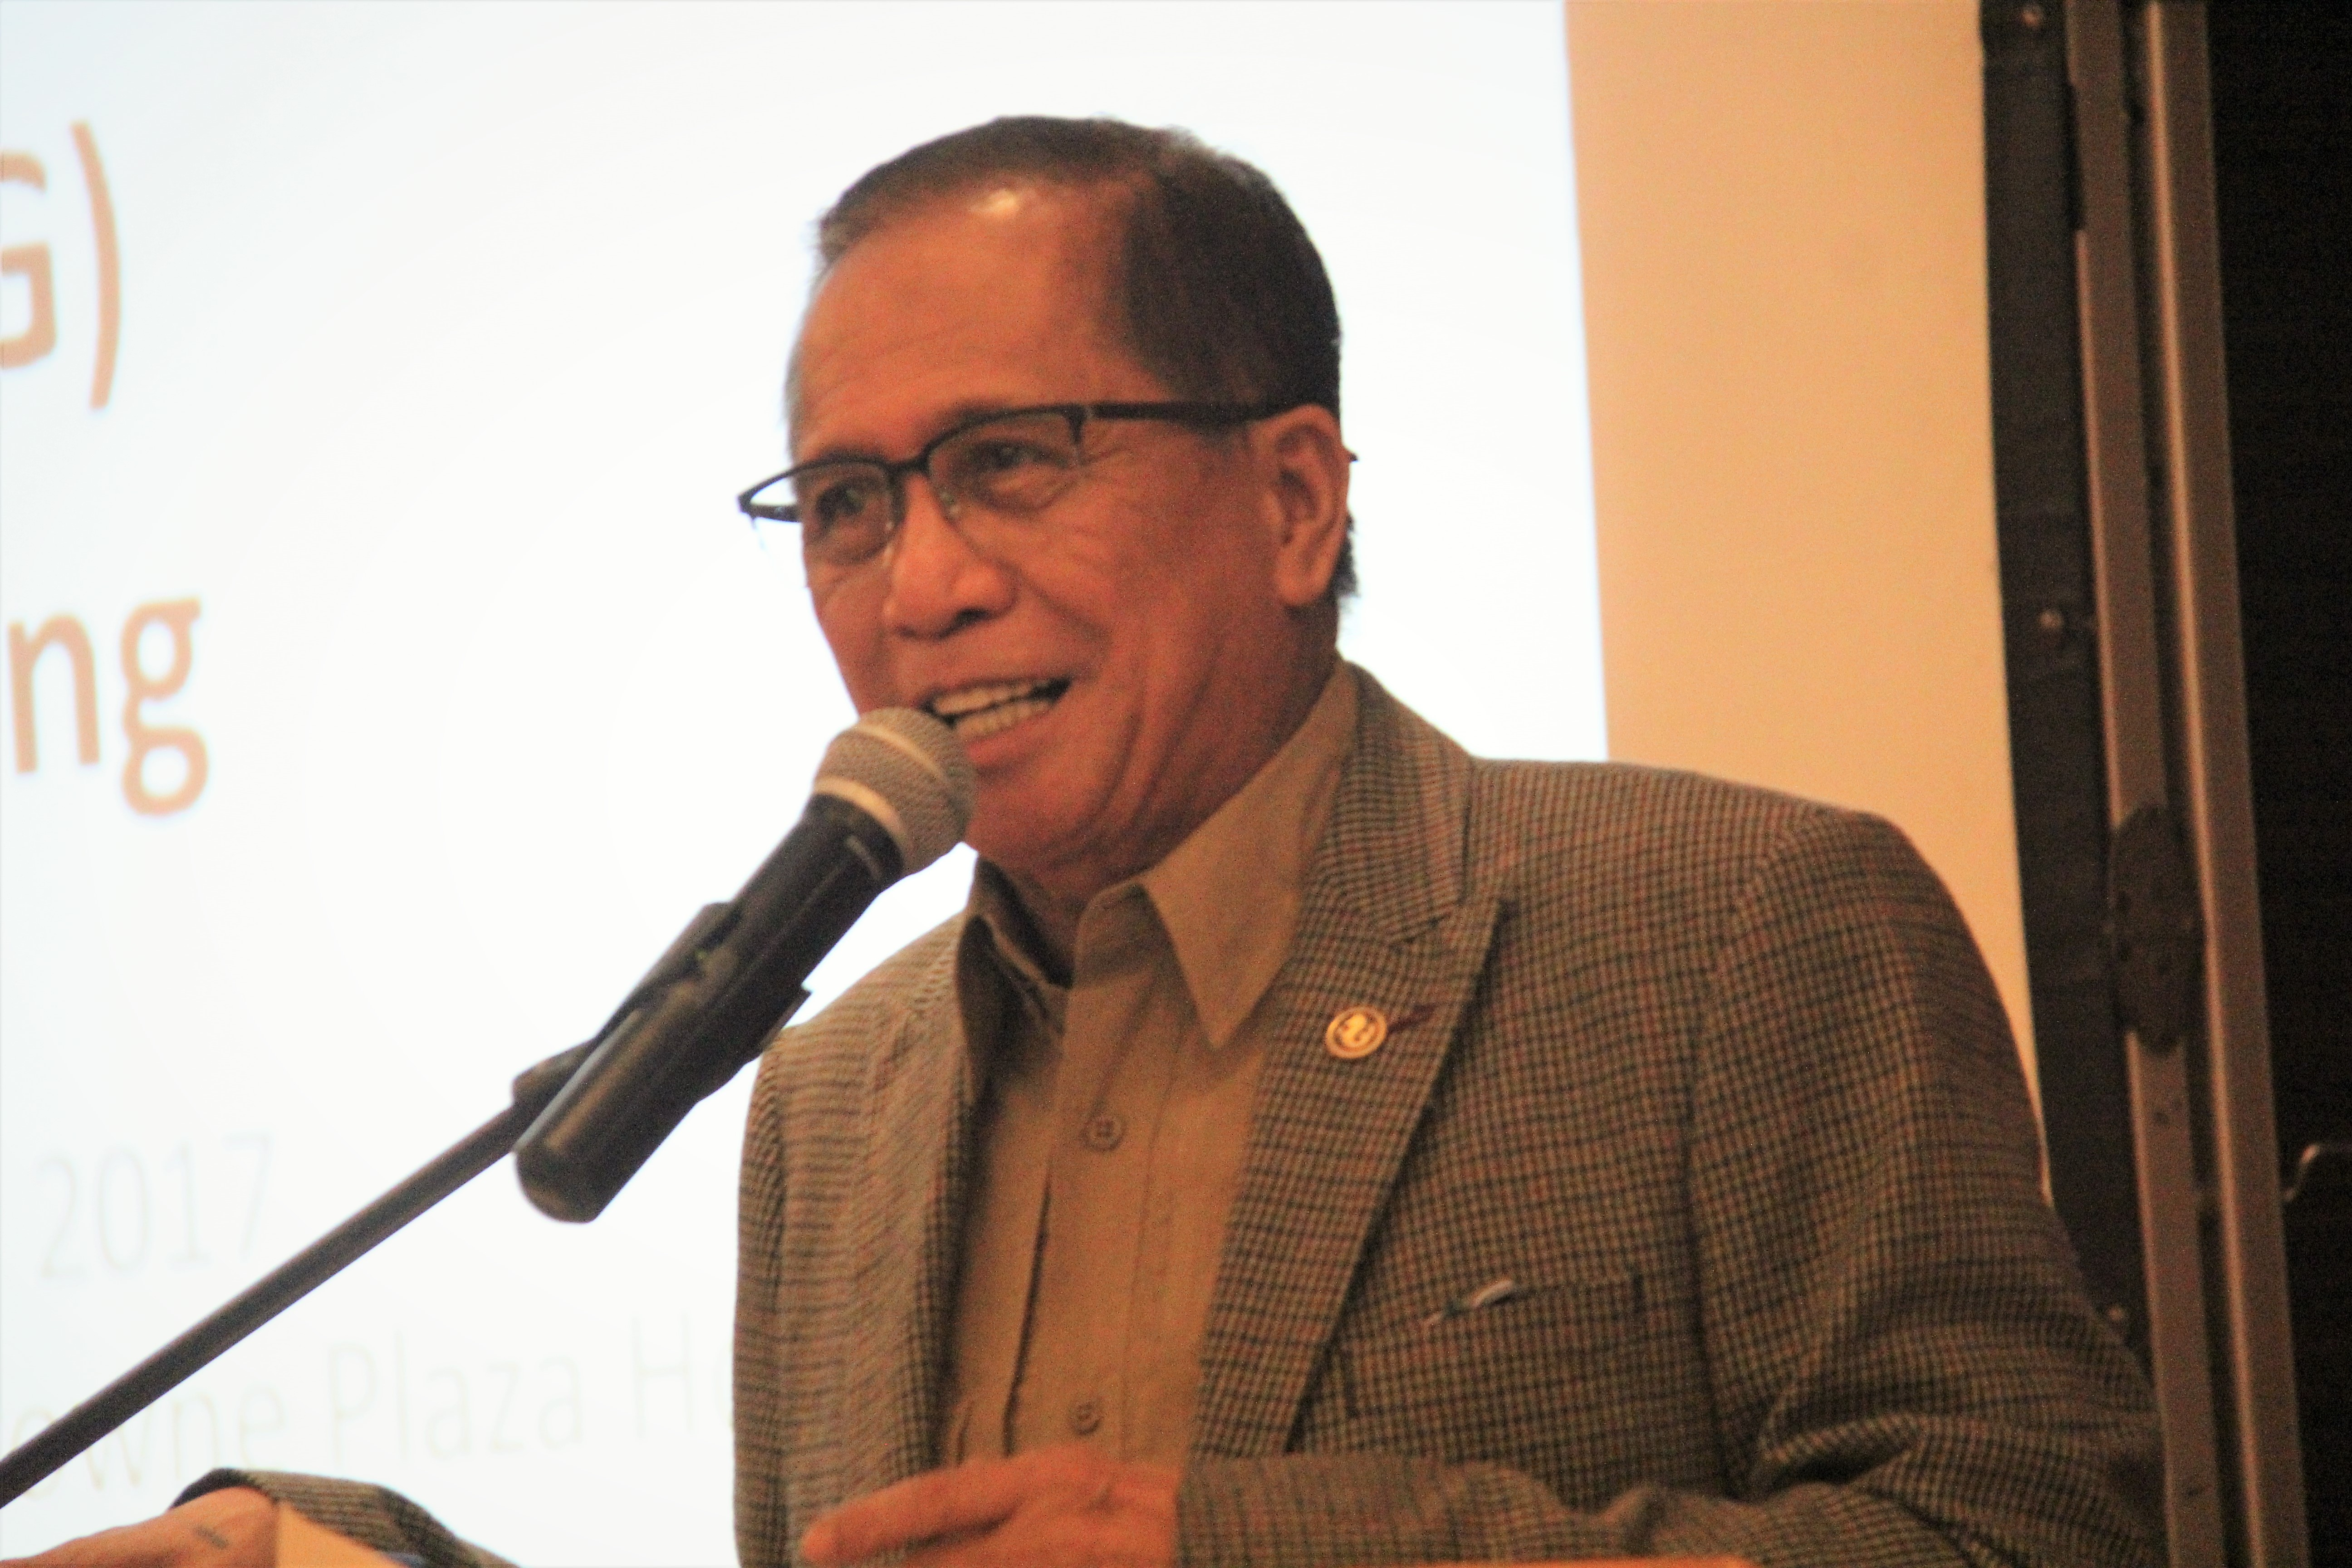 Dureza: Approach peace process with optimism